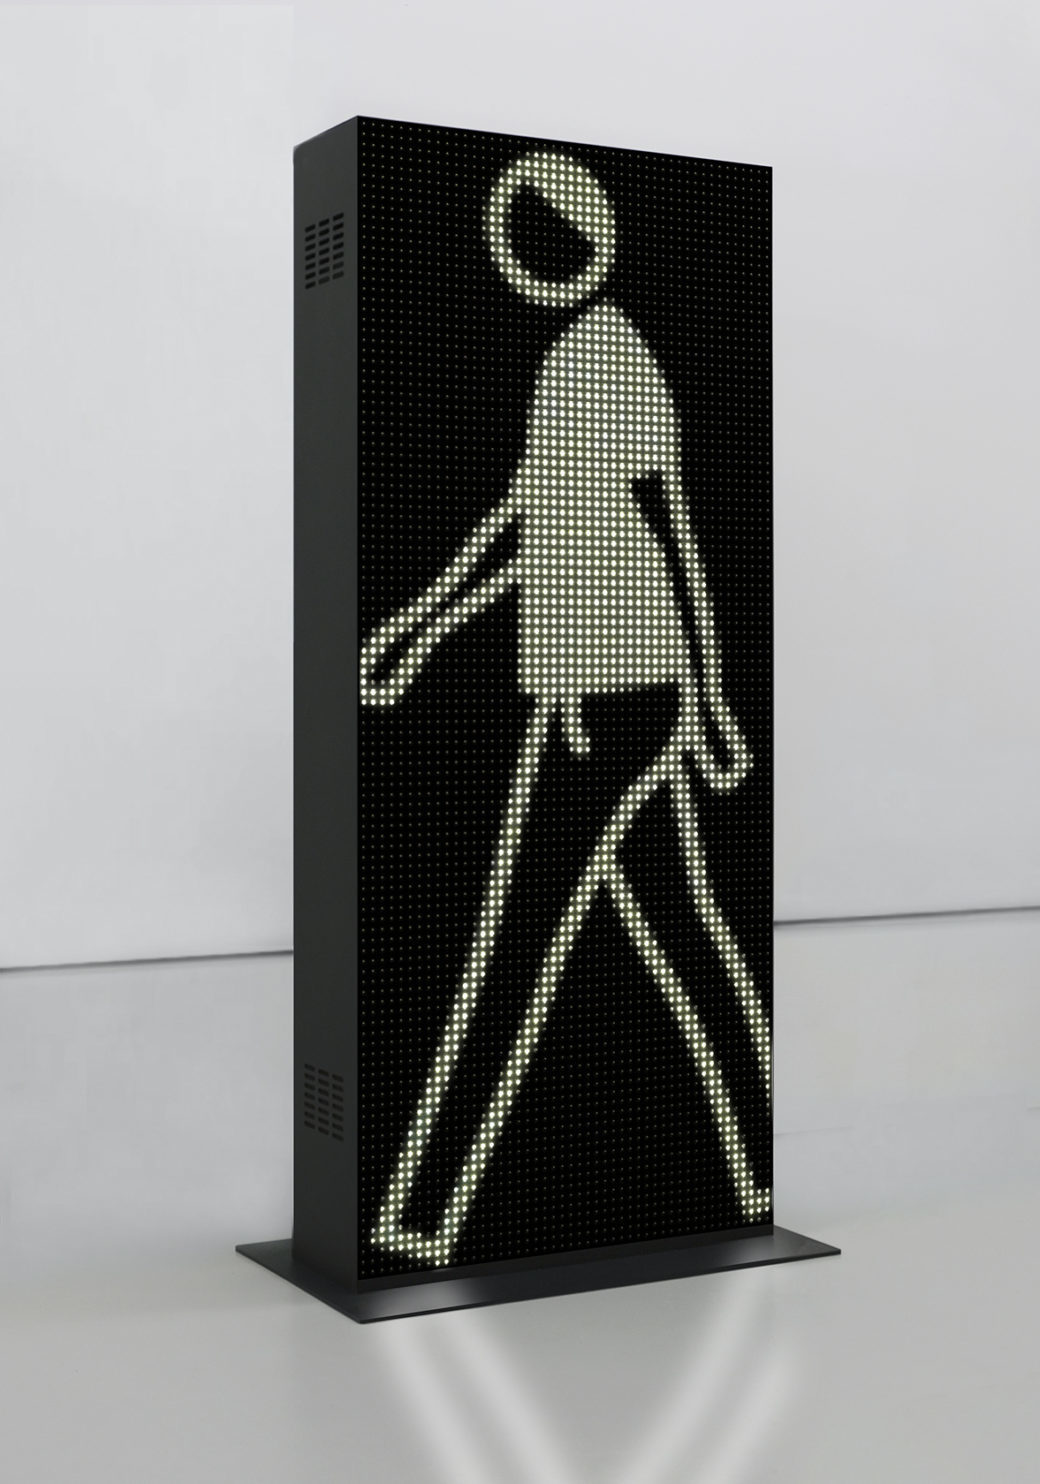 An LED sculpture depicts a walking figure